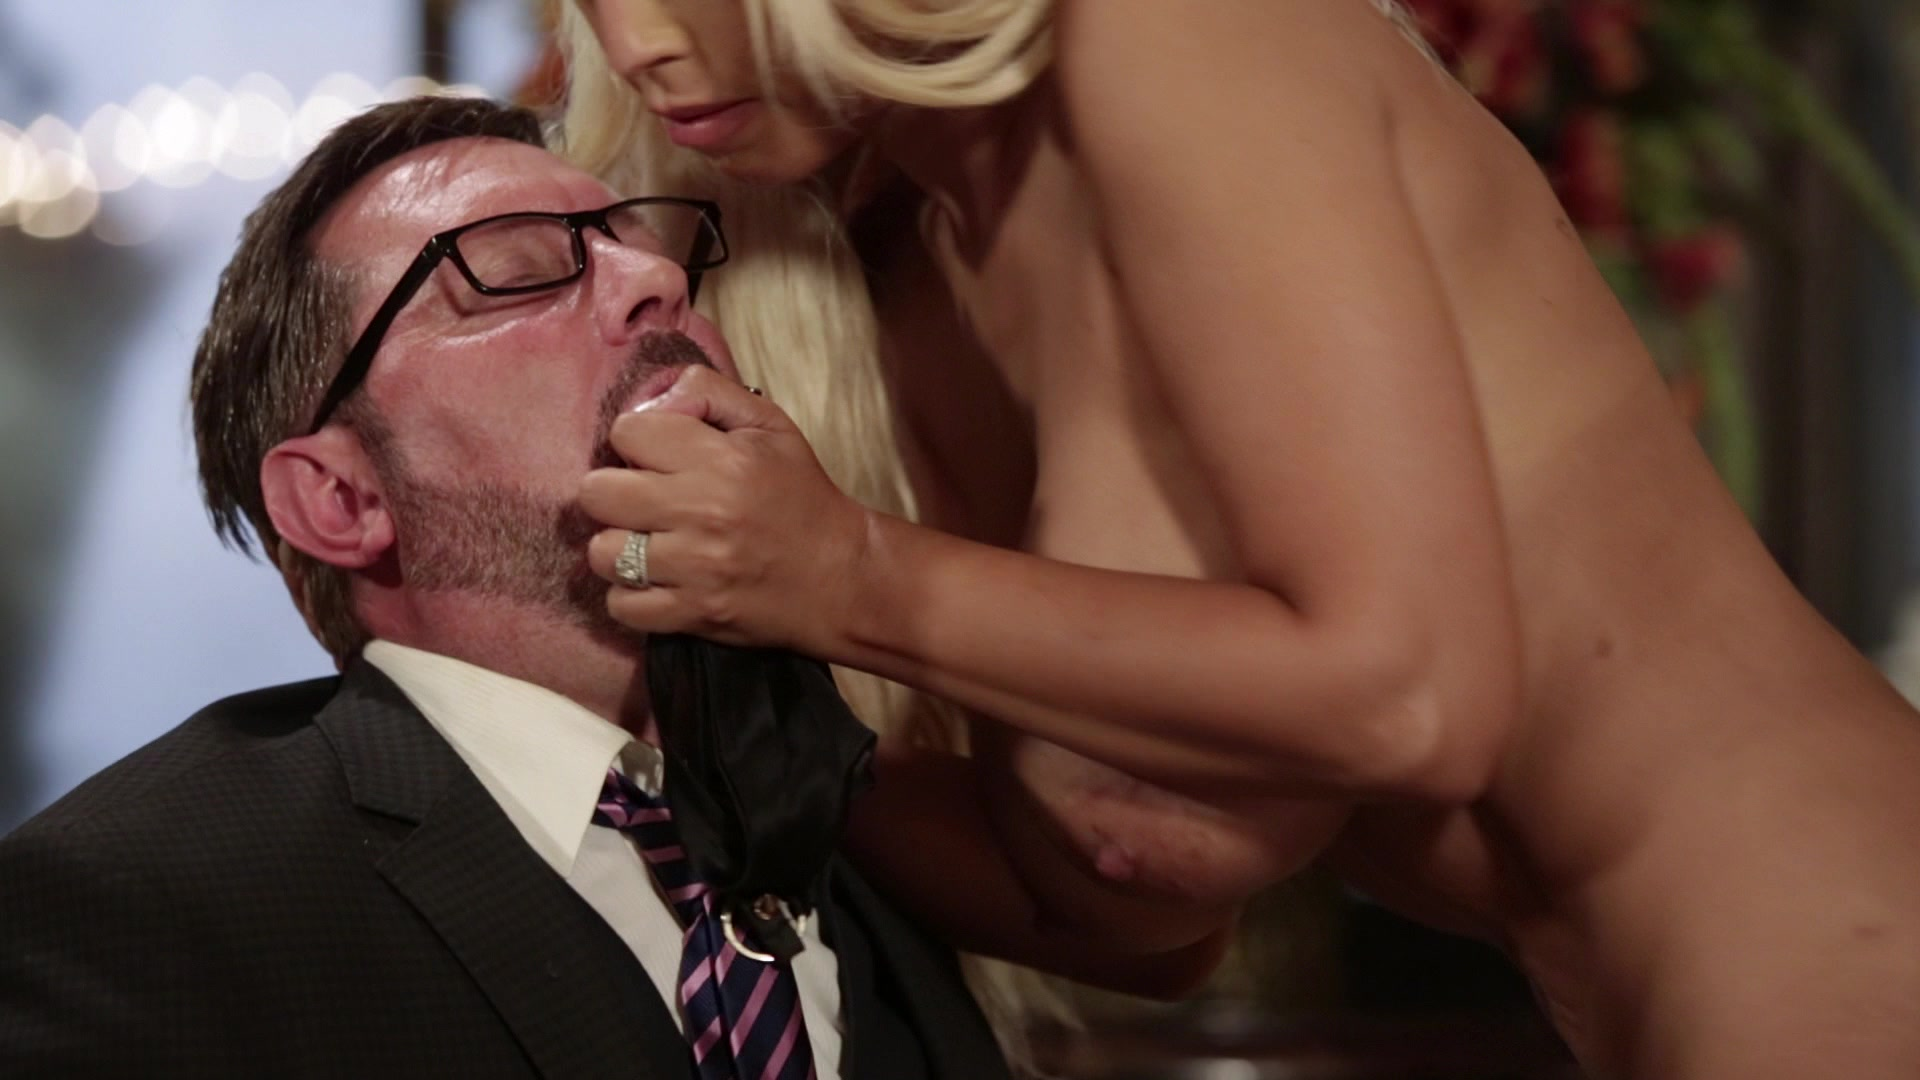 Scene with Jessica Drake - image 17 out of 20